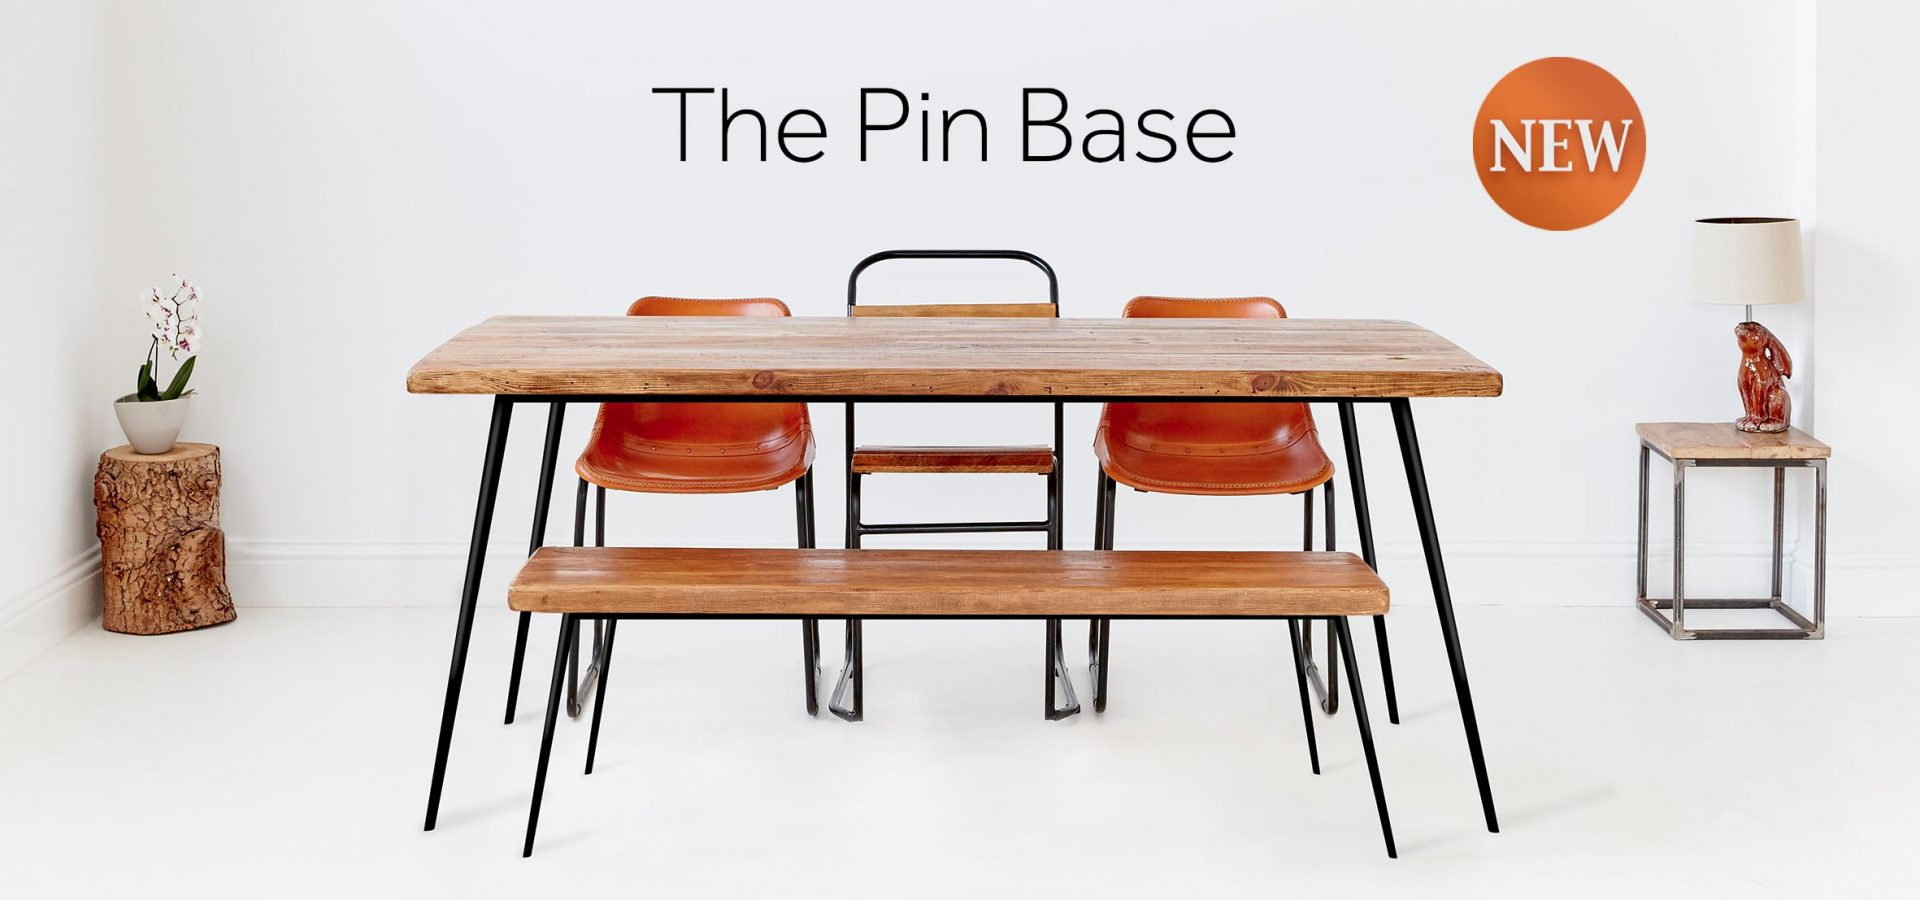 Pin Base Furniture Range